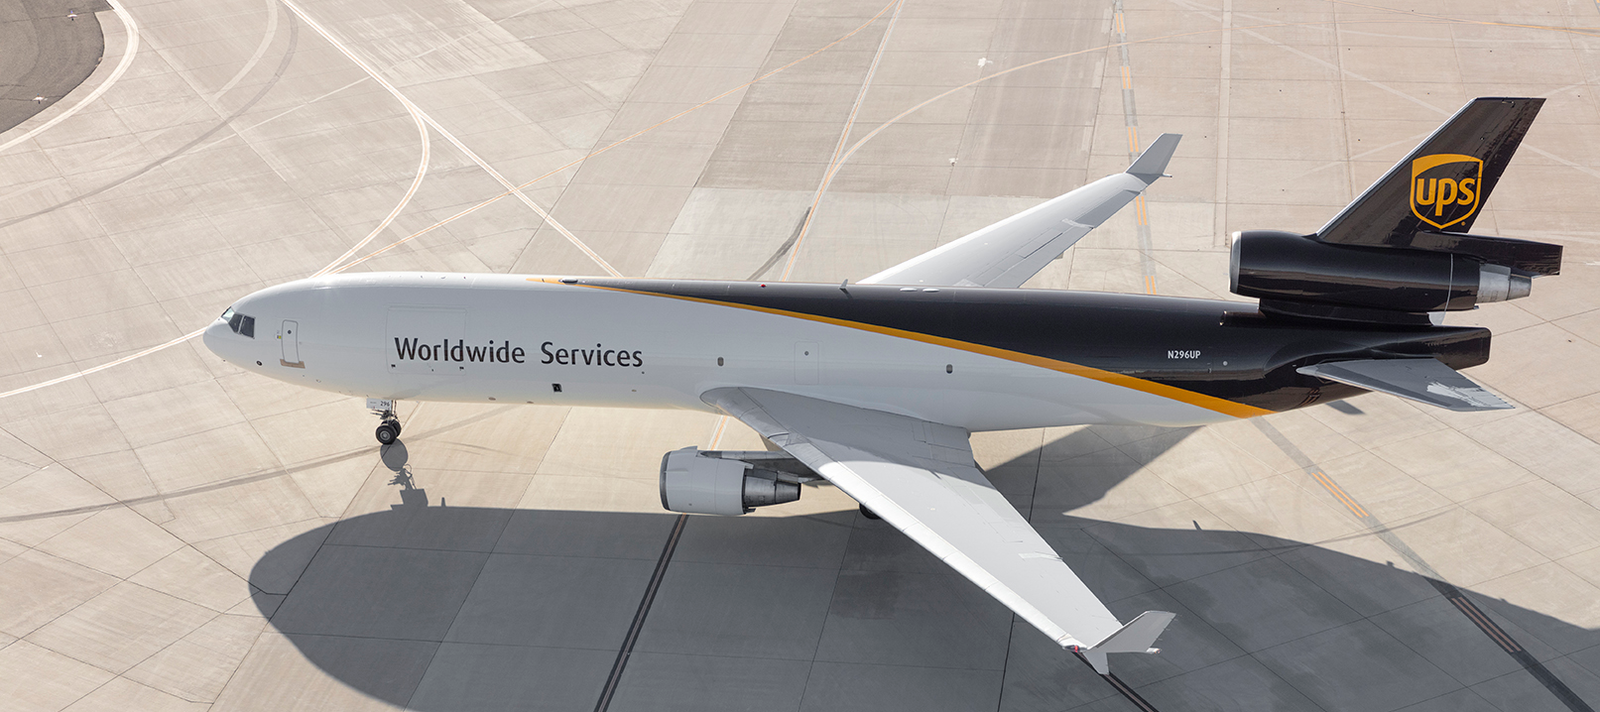 UPS is one of several transport companies that Shiplink has as a partner. You can easily send packages and other shipments with UPS using Shiplink. With the help of our price calculator, you always get a fixed price for your package. We book the shipping with UPS and take care of all the practicalities.